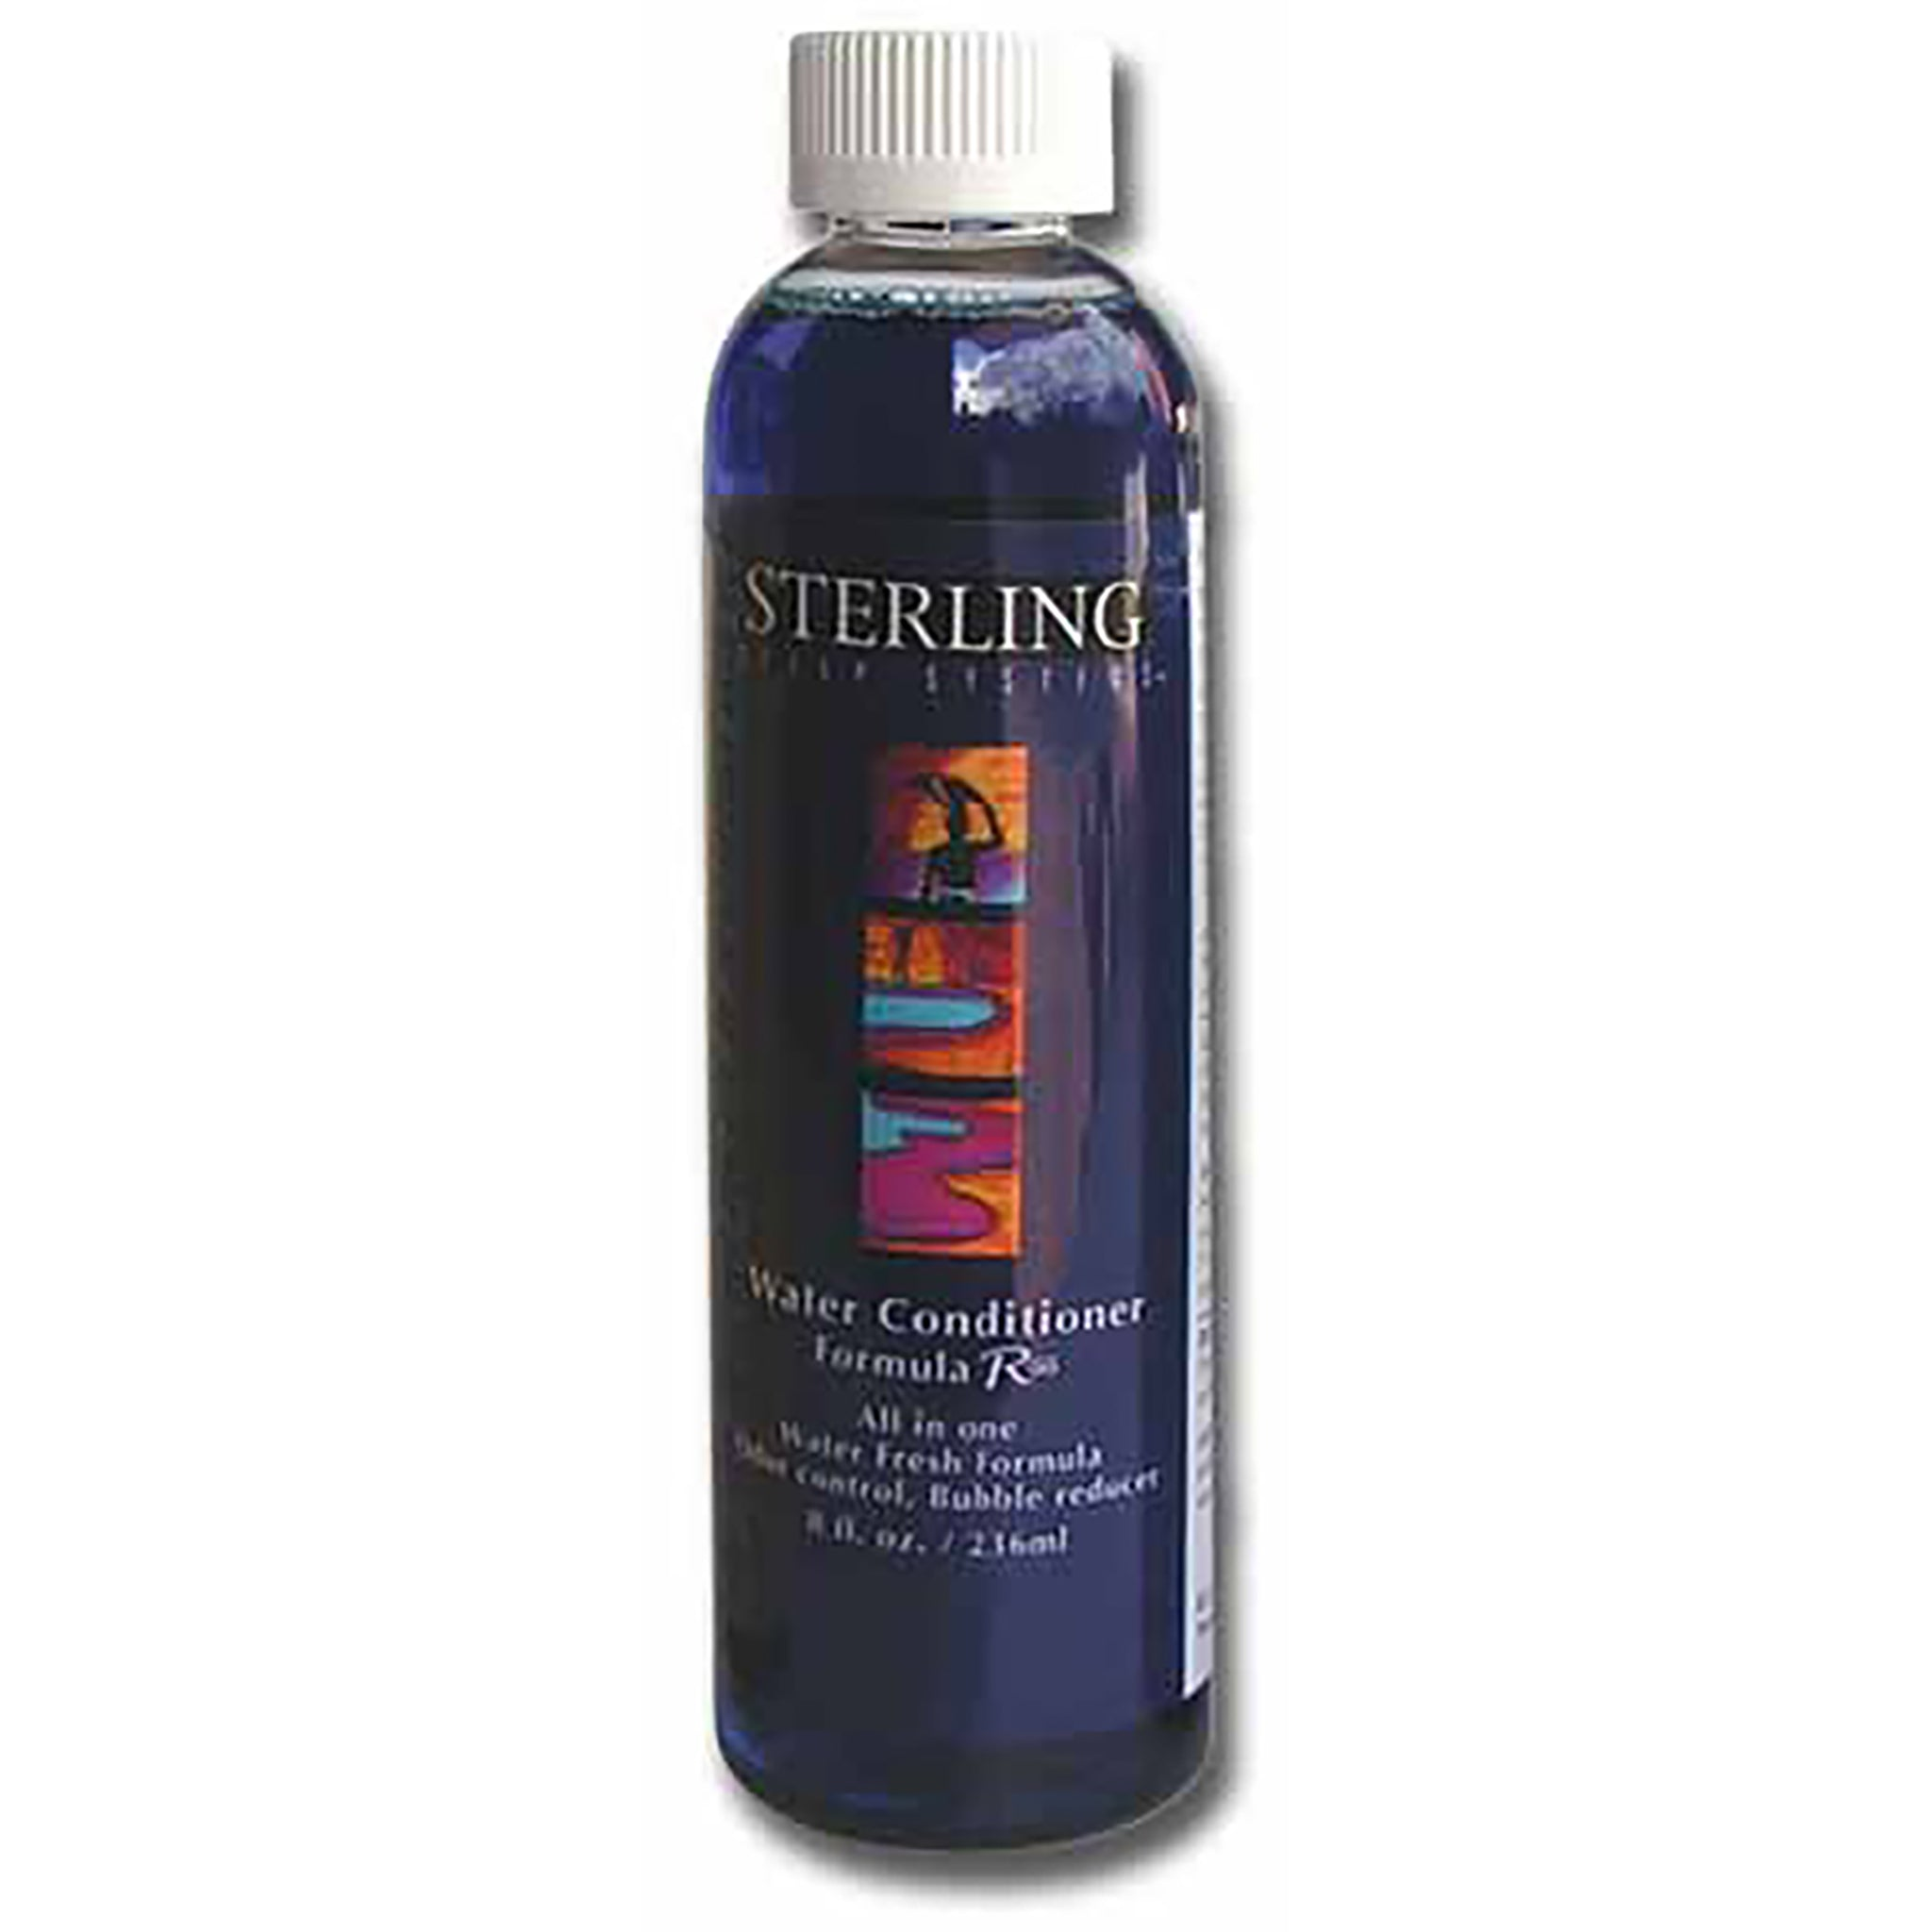 8 oz. Water Conditioner - Sterling Sleep Systems